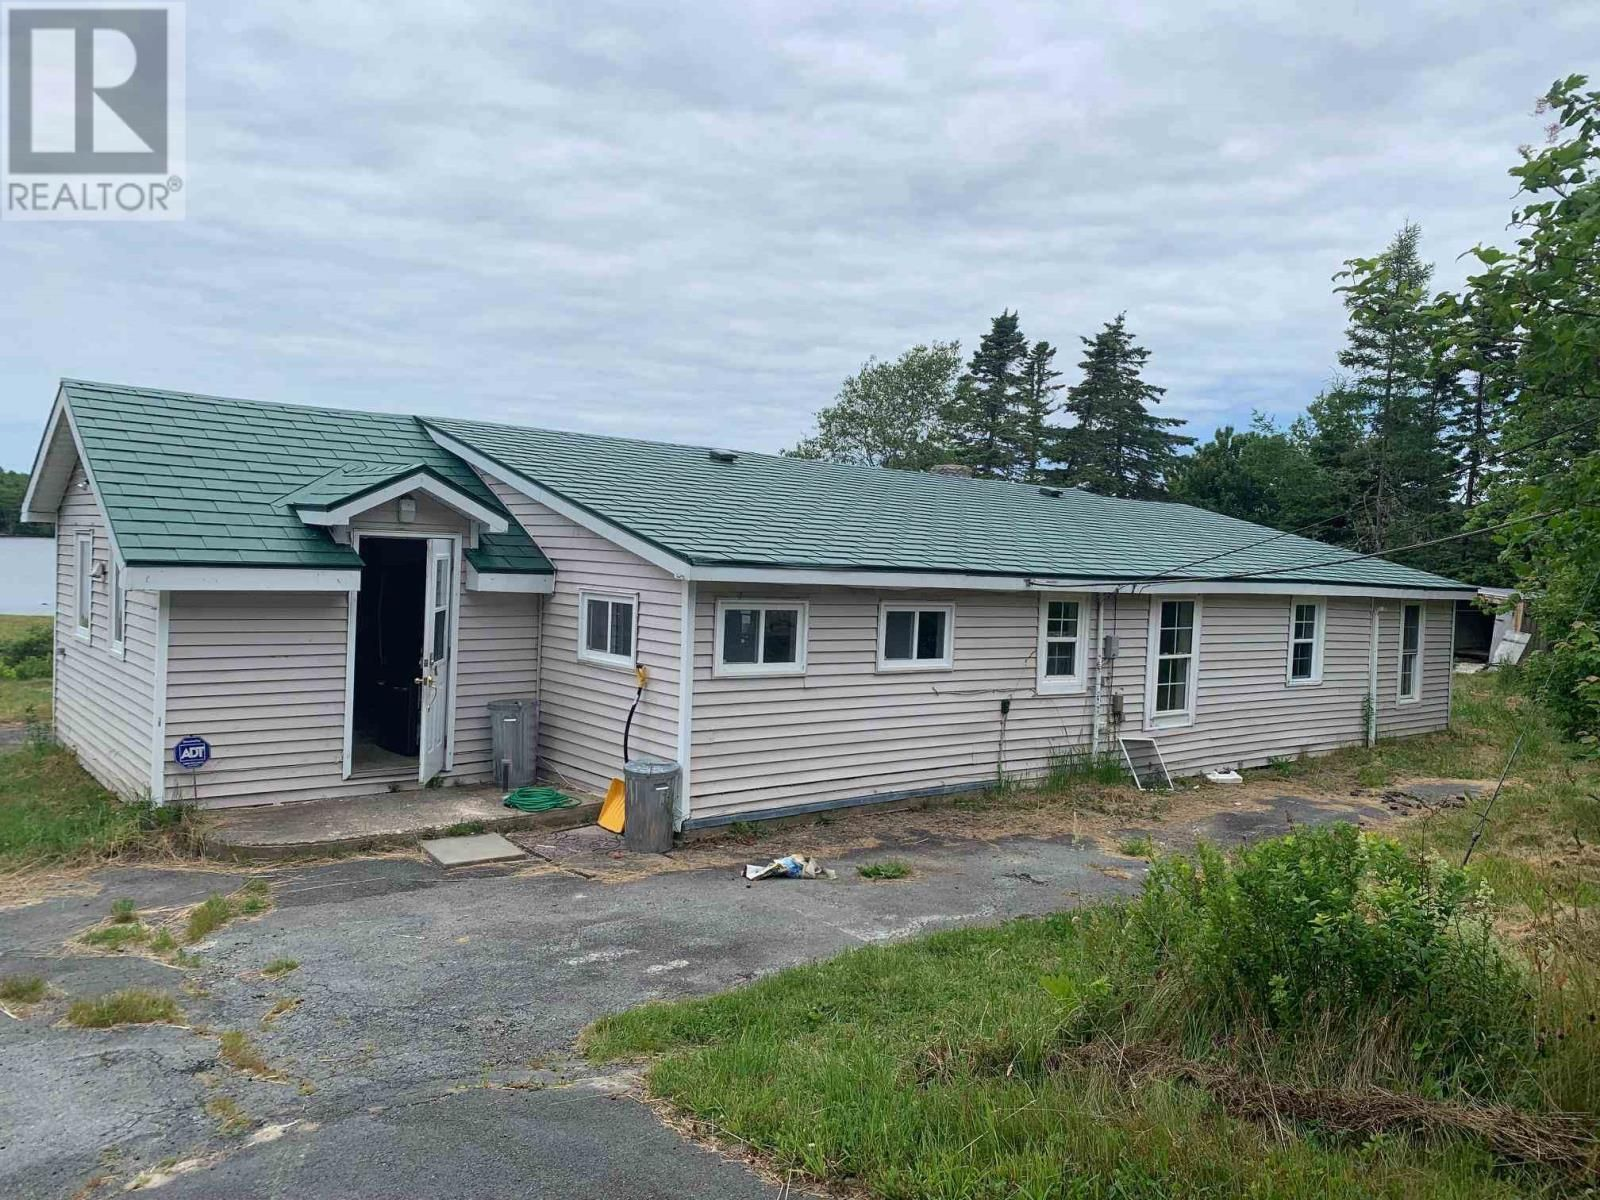 Main Photo: 2029 Eastern Shore Road in West Berlin: House for sale : MLS®# 202117367